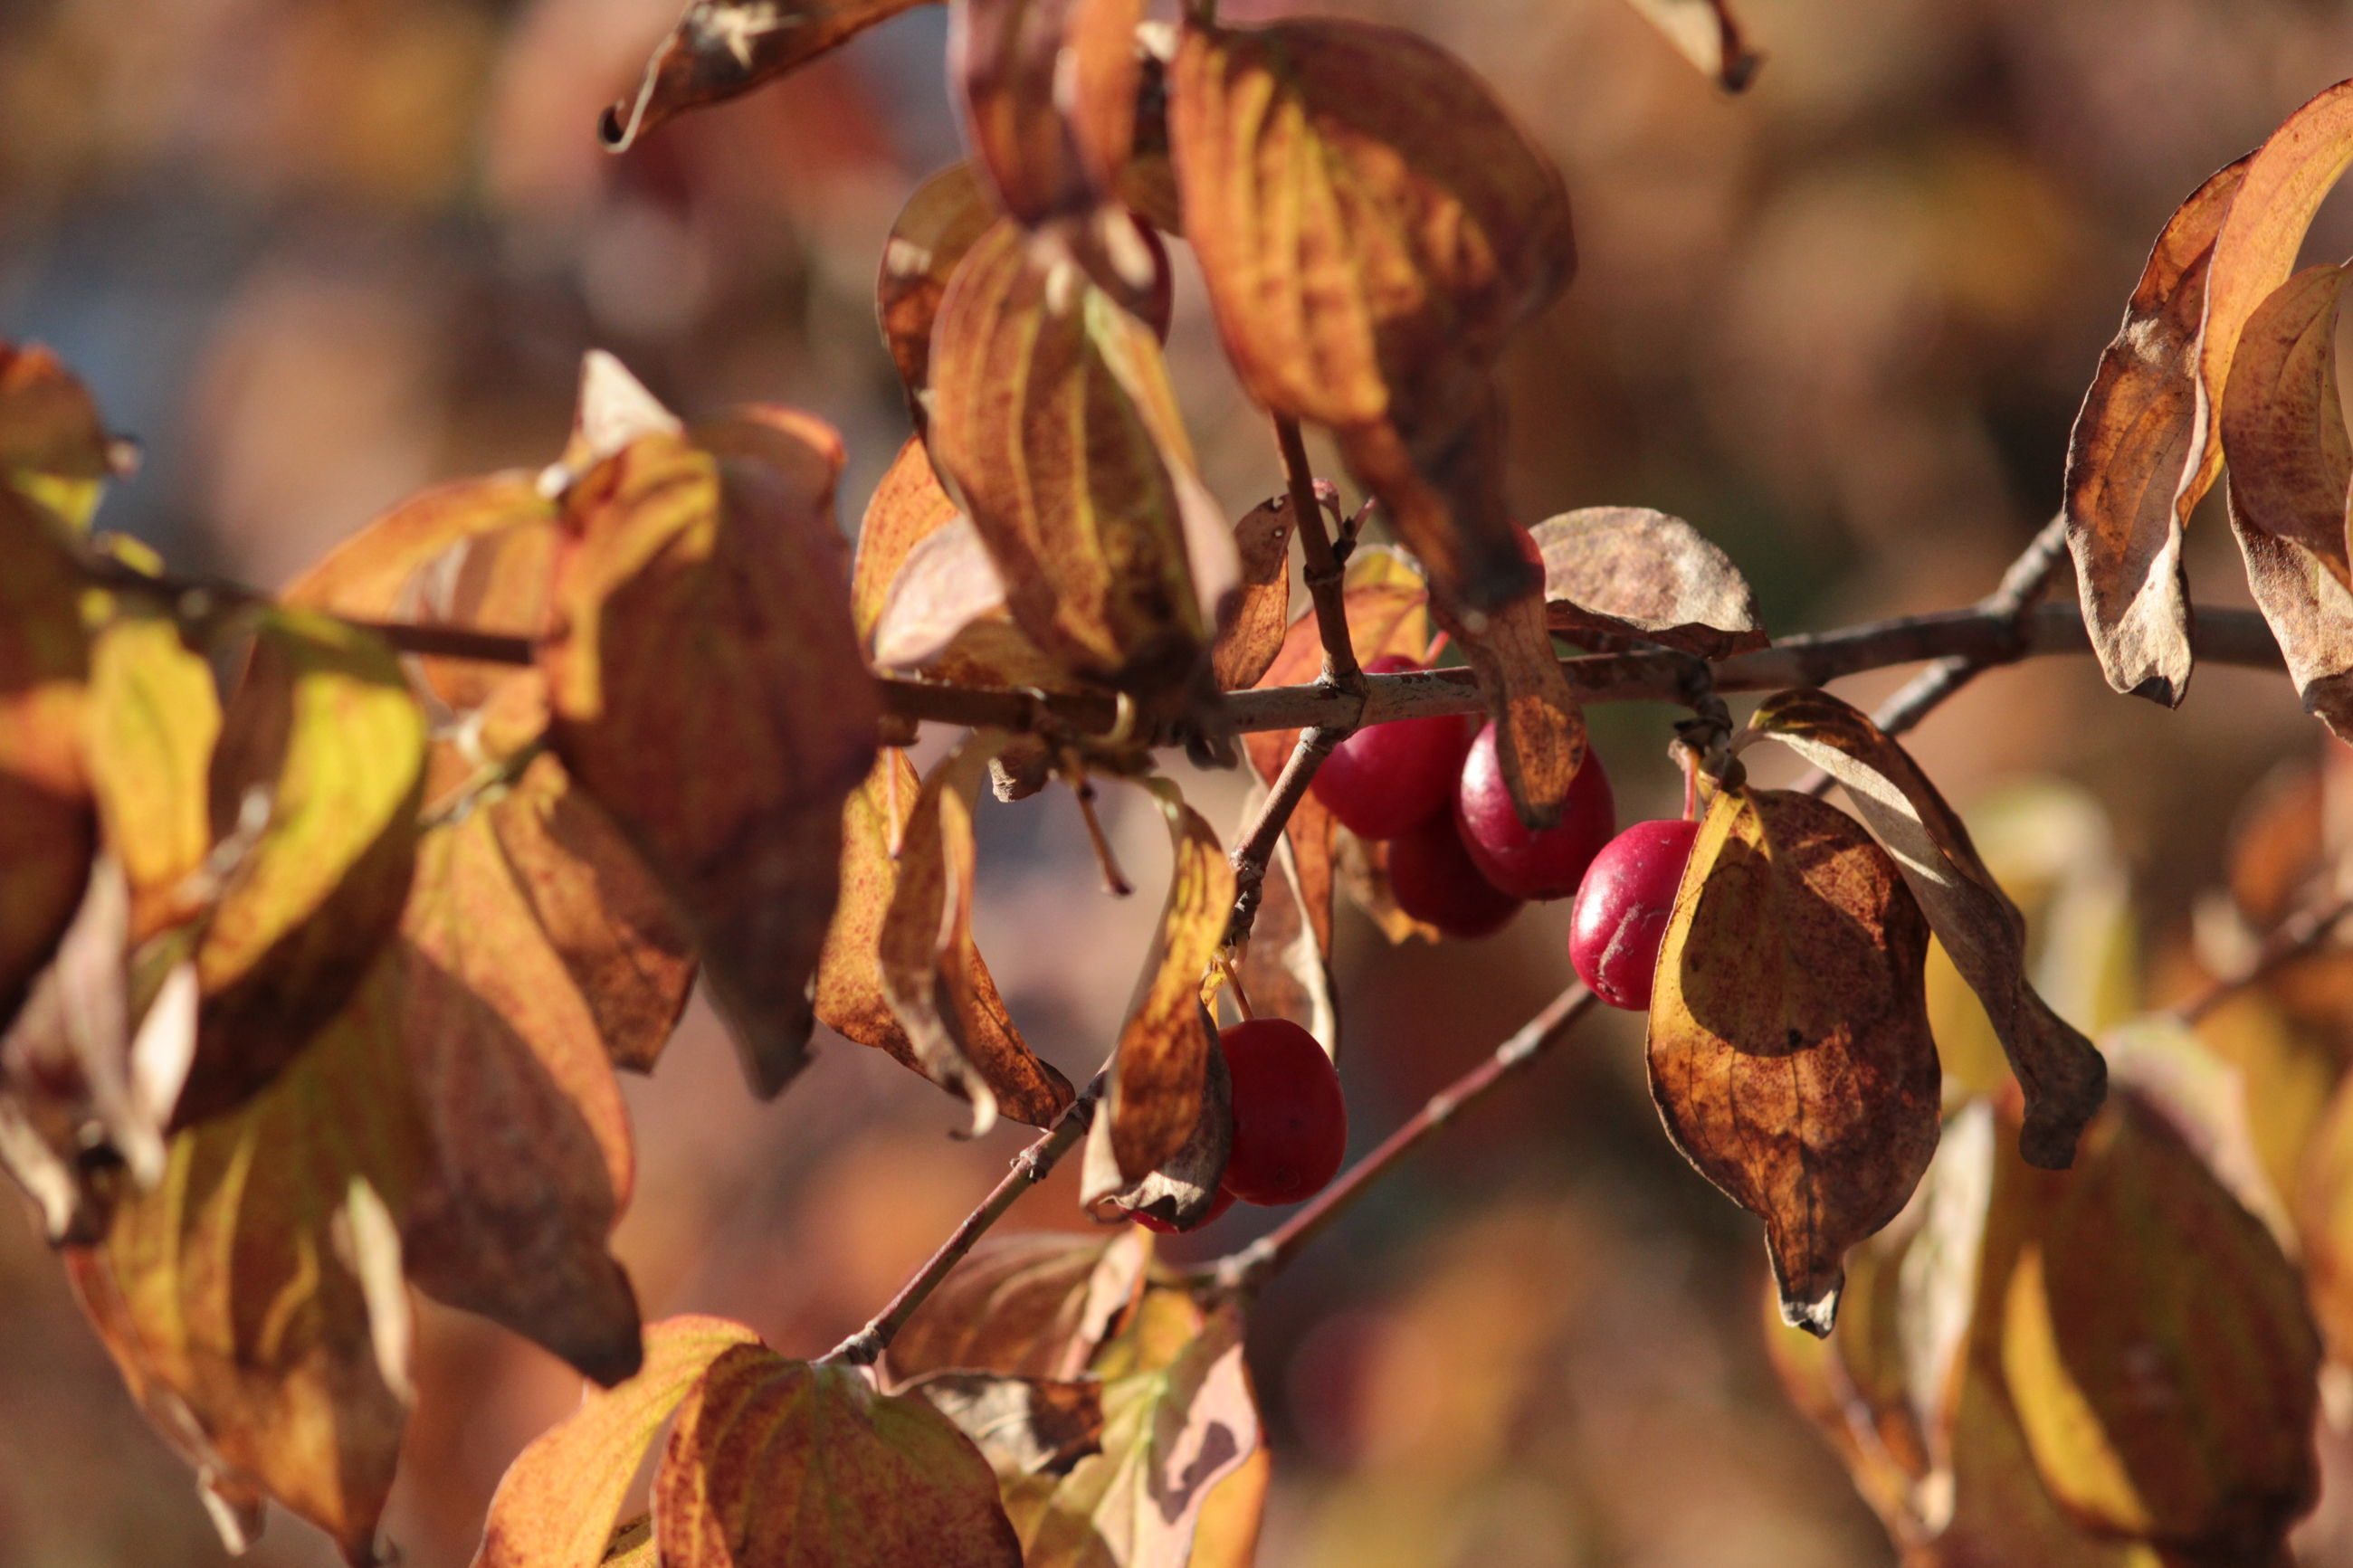 leaf, plant part, close-up, focus on foreground, plant, autumn, growth, fruit, no people, tree, nature, day, food, branch, beauty in nature, change, food and drink, healthy eating, outdoors, twig, leaves, natural condition